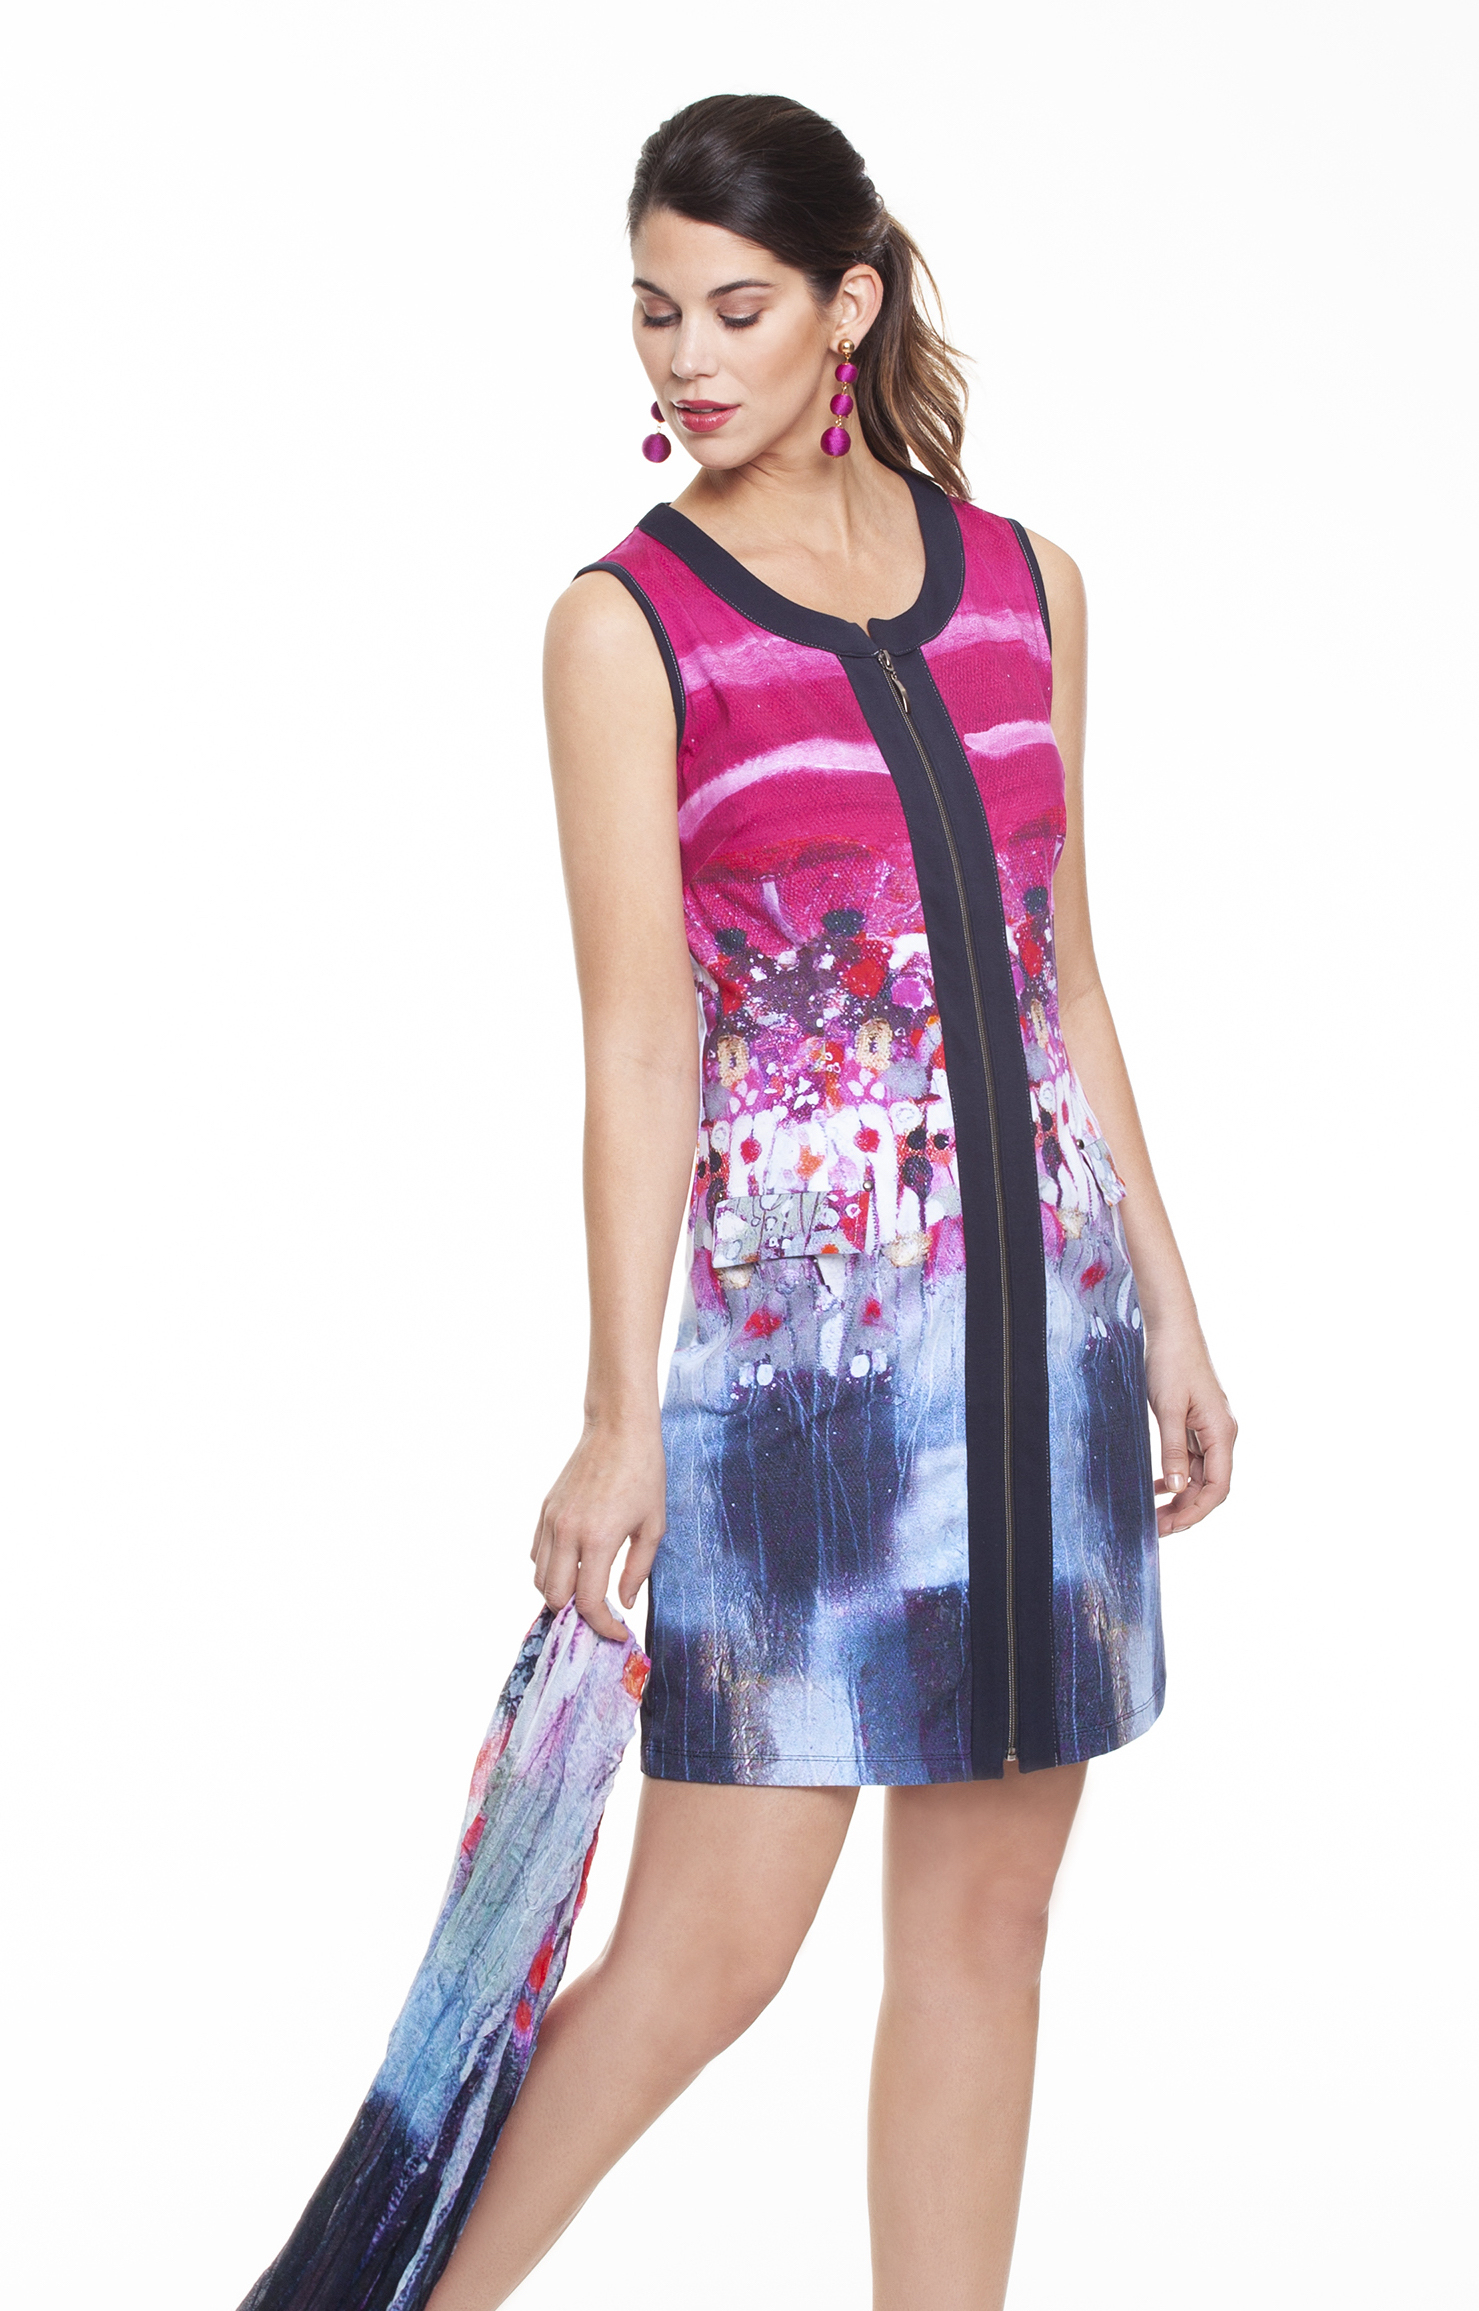 Simply Art Dolcezza: Fuschia Candy Storm Abstract Art Zip Dress SOLD OUT DOLCEZZA_SA_19653